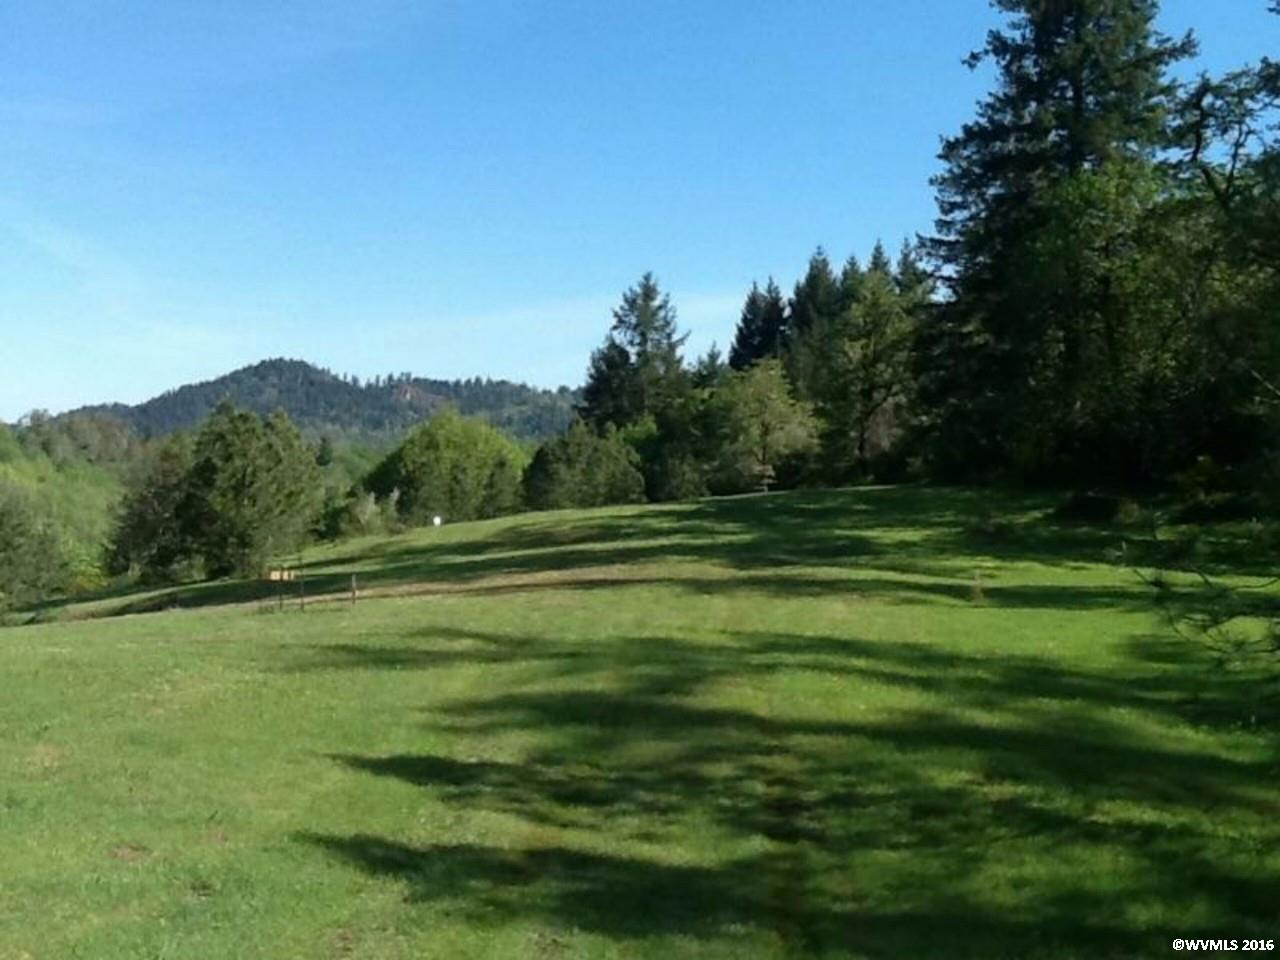 Image of  for Sale near Springfield, Oregon, in Lane County: 7.4 acres